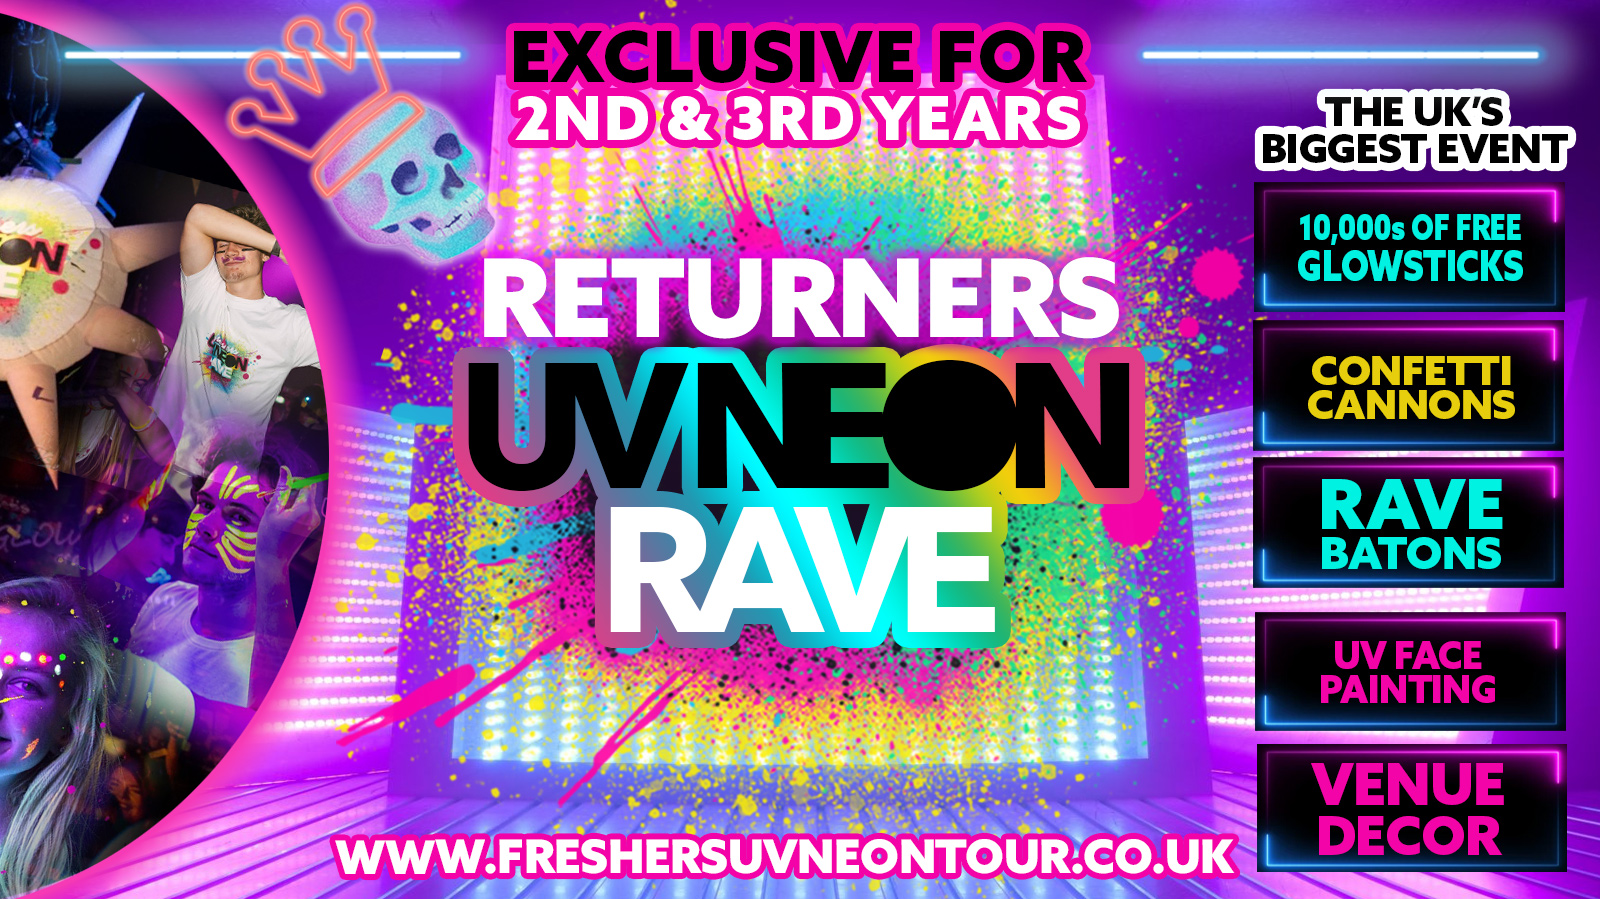 Southampton Returners UV Neon Rave   Exclusive for 2nd & 3rd Years